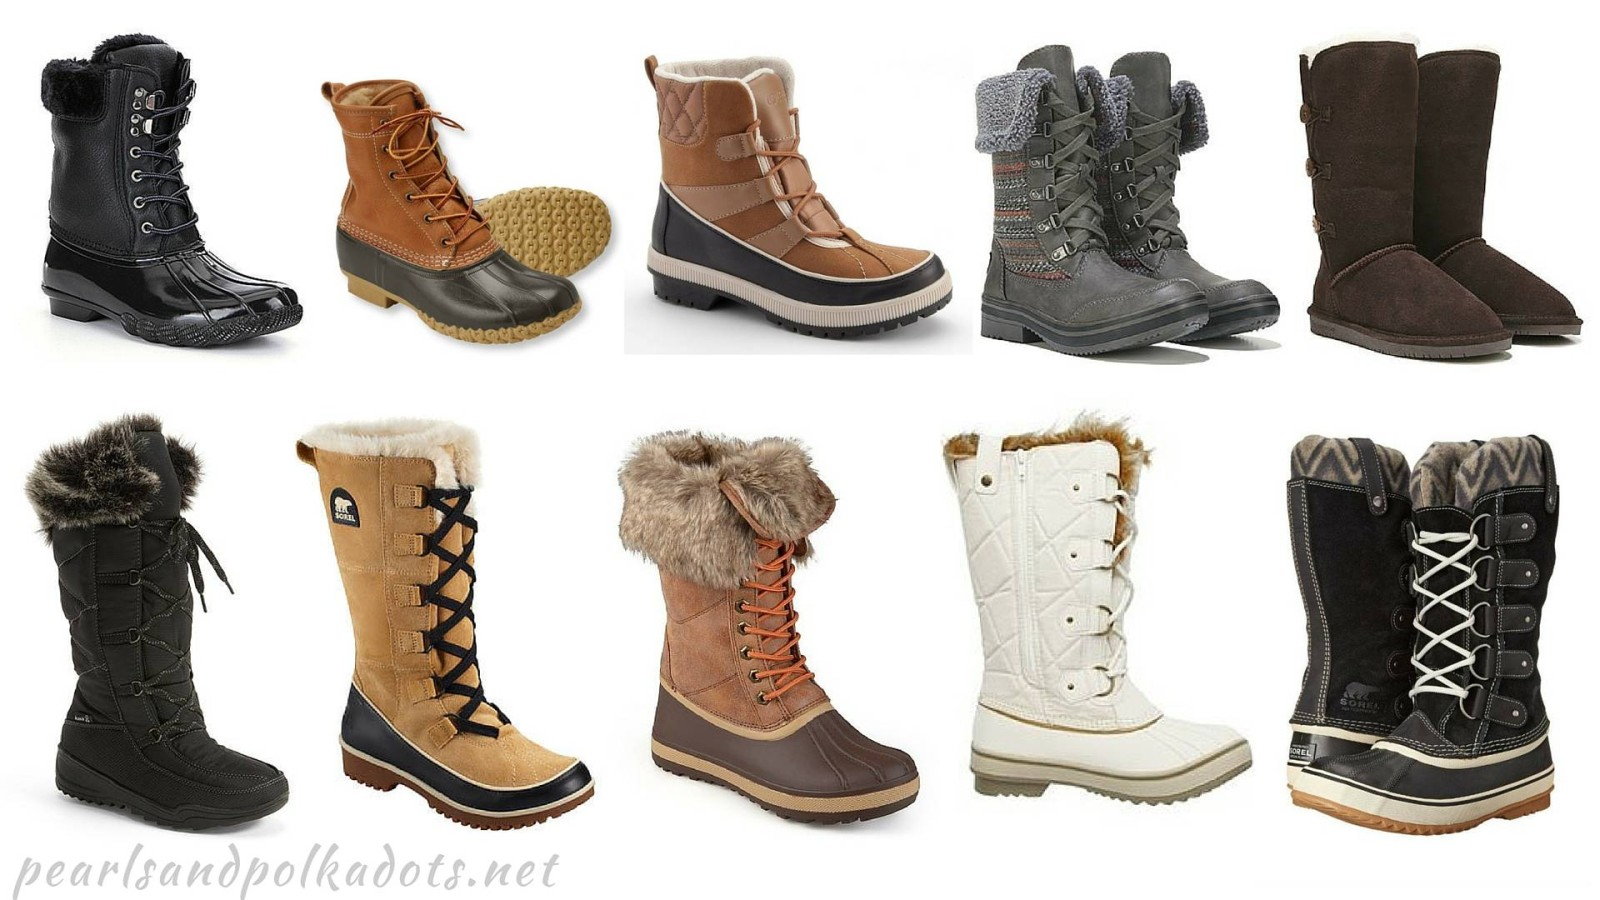 'Boot'iful Winter Boots that you will love! - Pearls and Polkadots